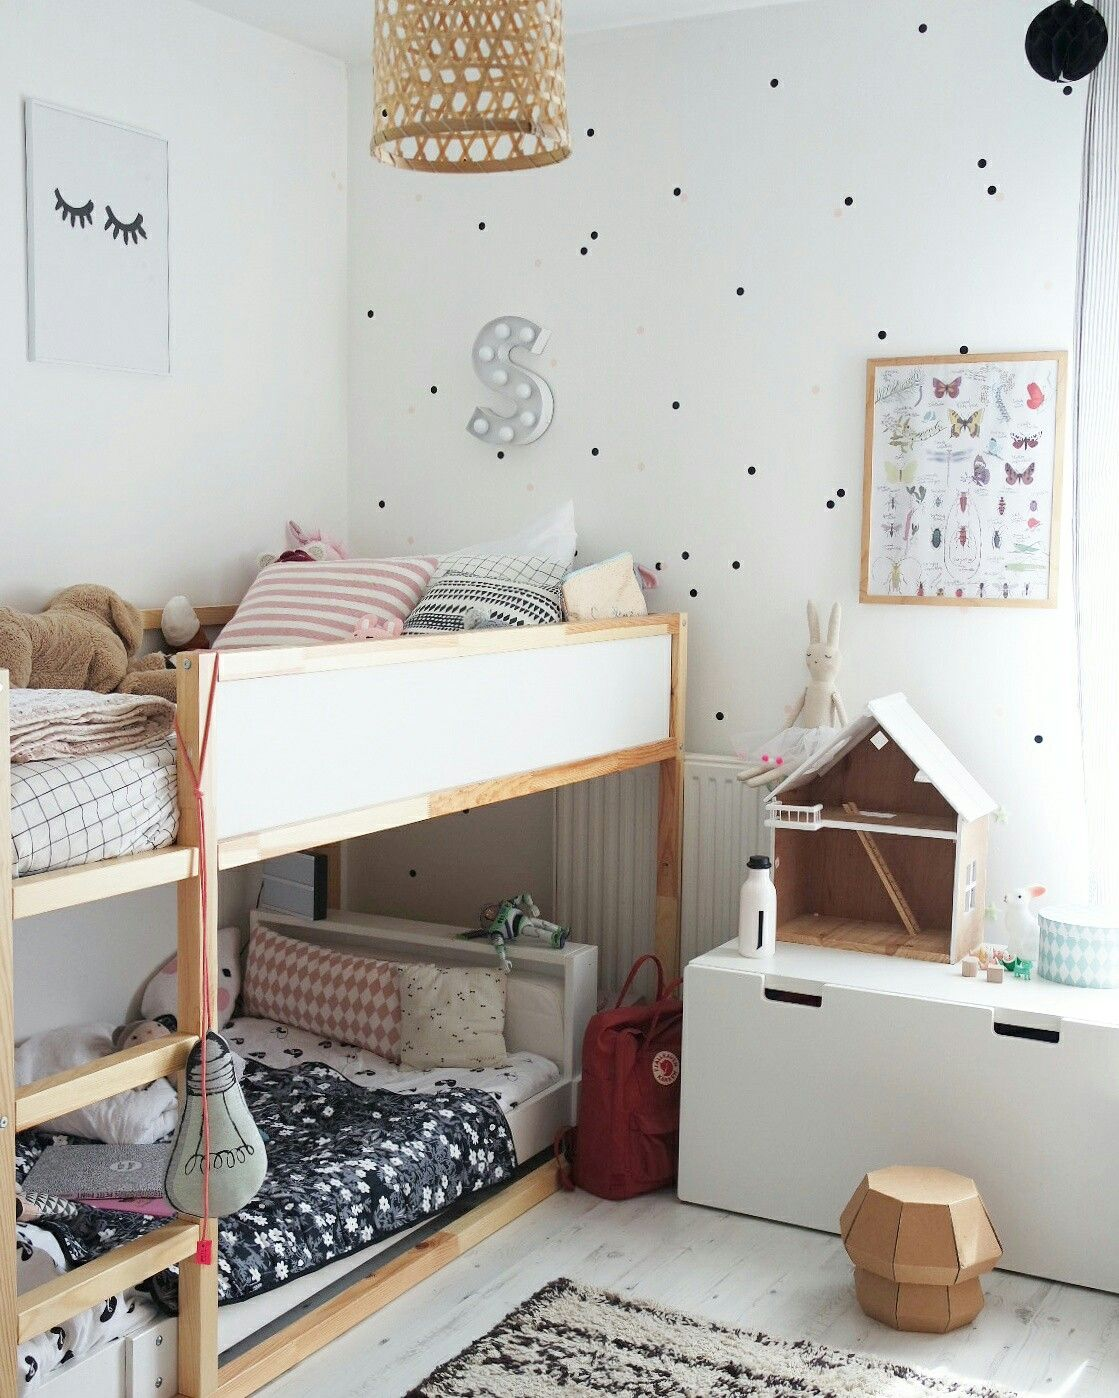 lit superpos ikea enfants pinterest lit superpos ikea lit superpos et superpose. Black Bedroom Furniture Sets. Home Design Ideas